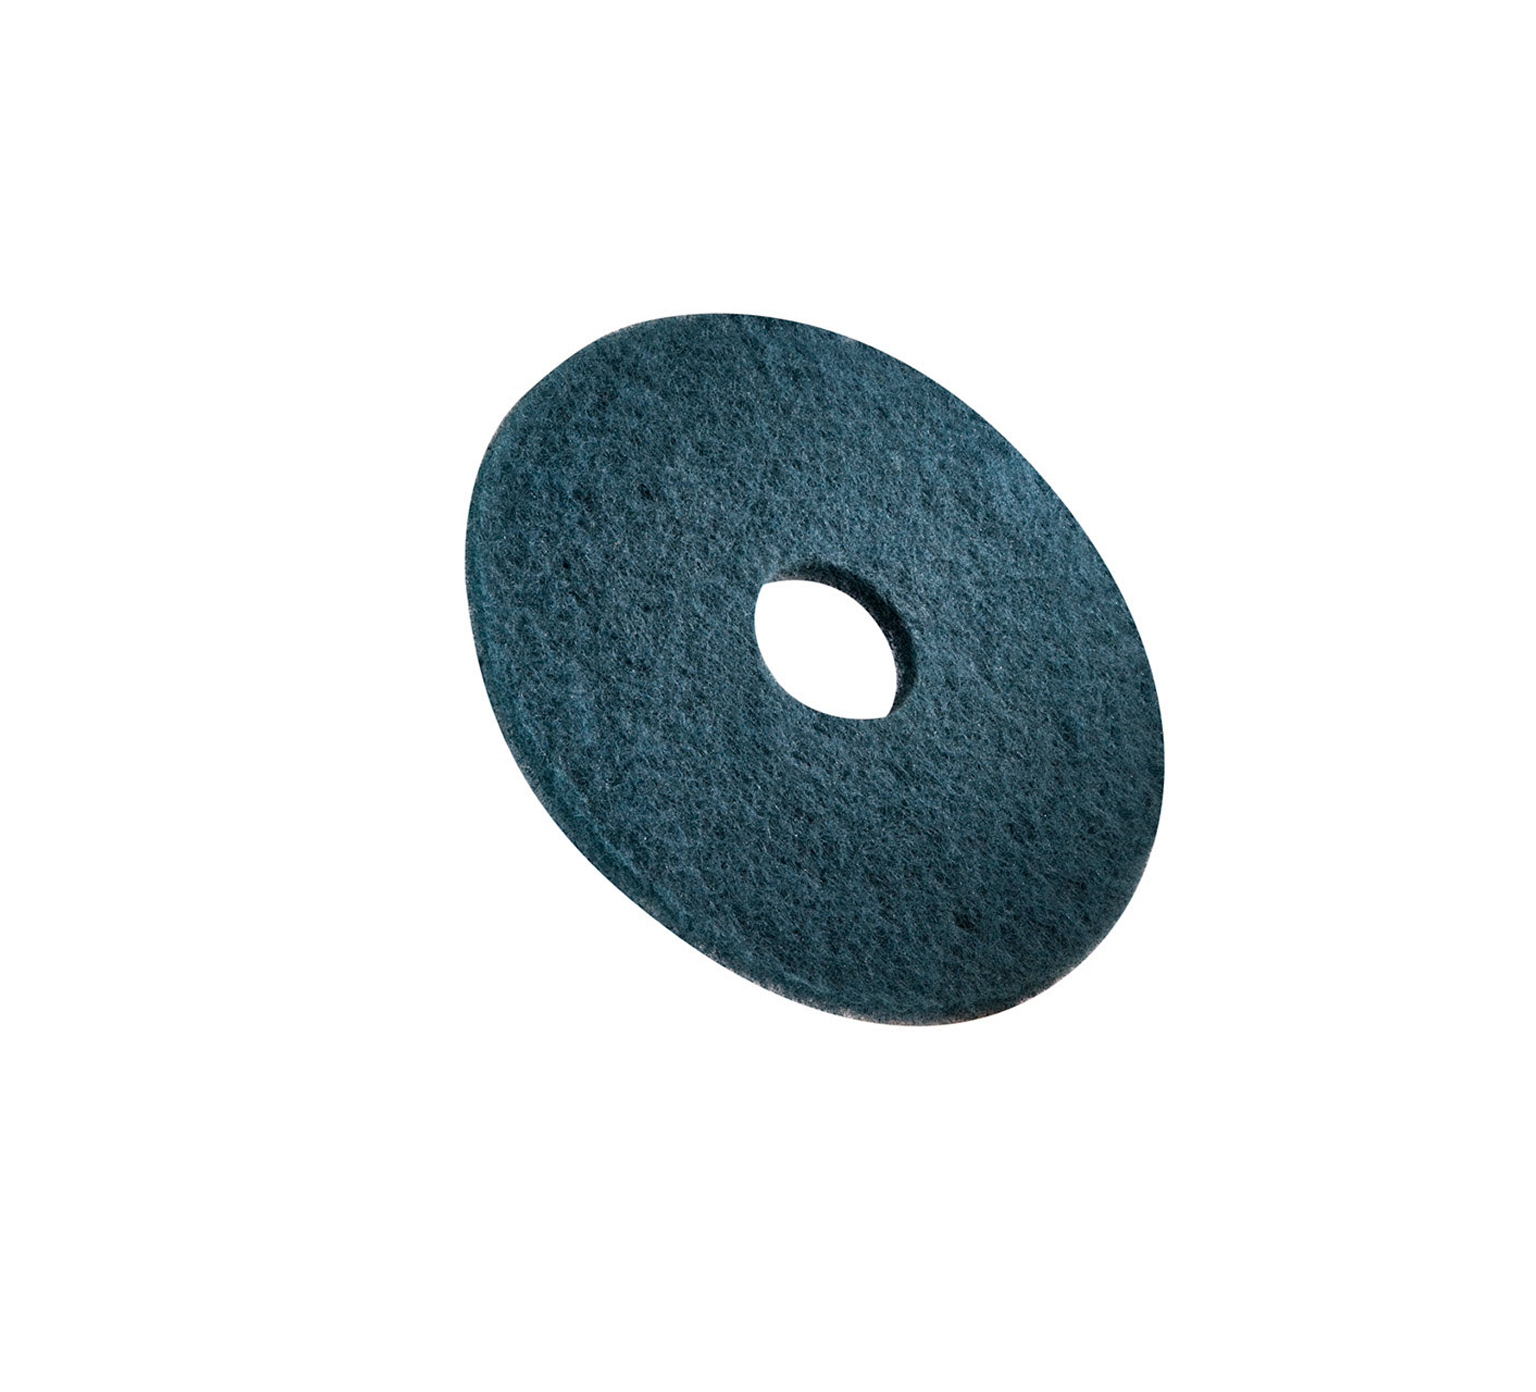 222326 3M Blue Scrubbing Pad – 14 in / 356 mm alt 1